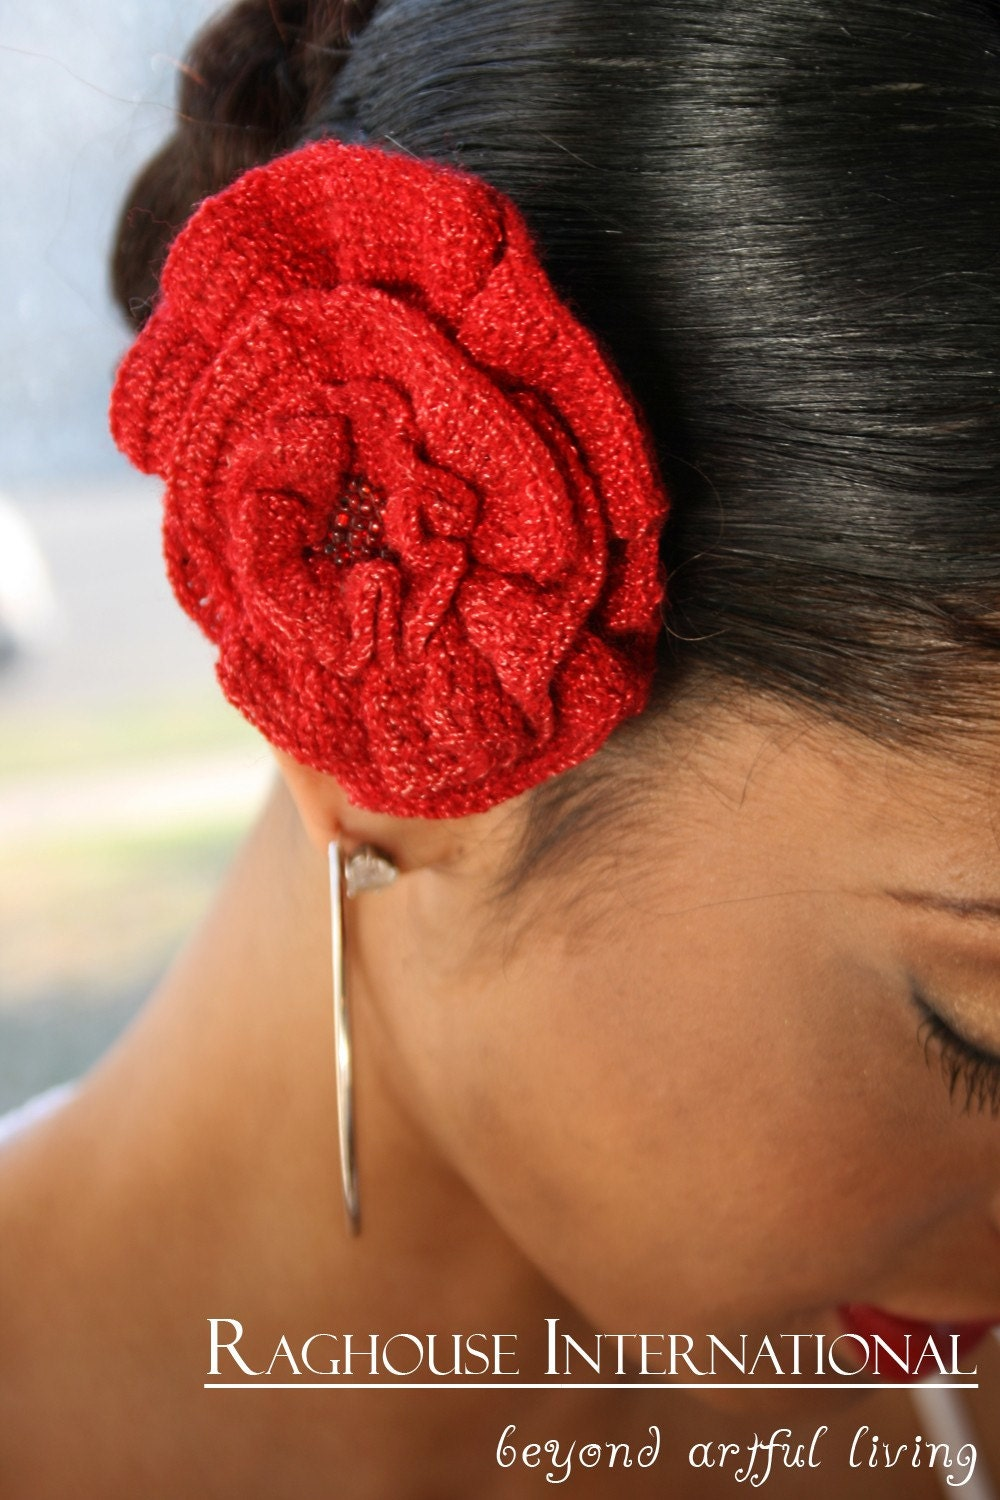 Red Rose for the Lady by raghousenternational on Etsy from etsy.com